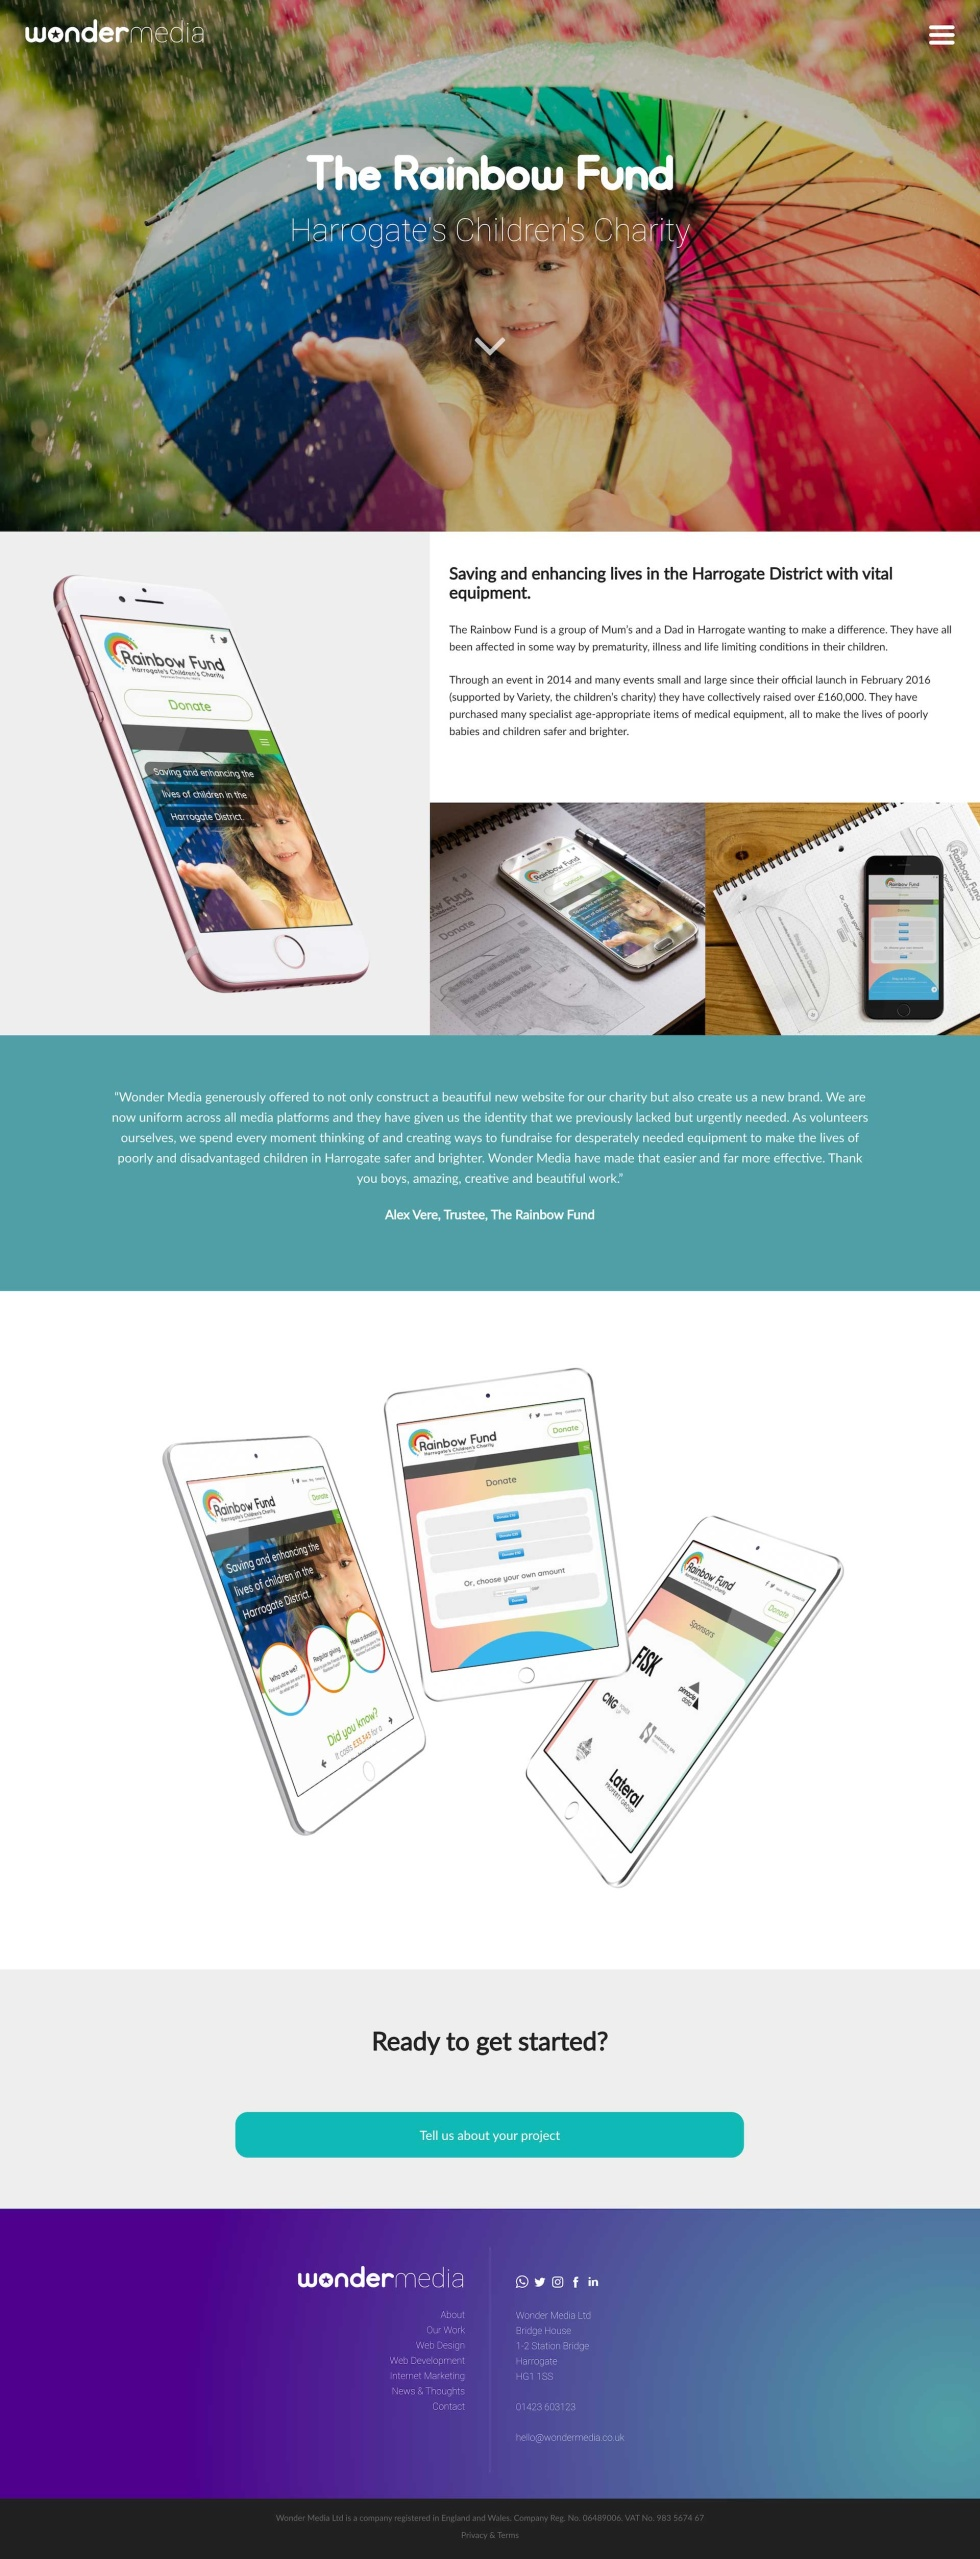 Email template. Page can be split into five parts. At the top, faded image of child under a rainbow umbrella holding their hand out to the rain. White logo at the center of the image. Below, iPhone screen displays mobile version of website homepage. To the right of the iPhone, a small paragraph with black lowercase text against a white background. Below the text, two photos side by side (a sketch of an email template next to an iPhone with the template). Below this, a horizontal rectangular box with teal background and overlaying white text that is a quote from the founder of agency.  Below this, three Apple tablets showing different versions of website homepage facing each other against a white background. Below this, green contact button along with more information and branding.